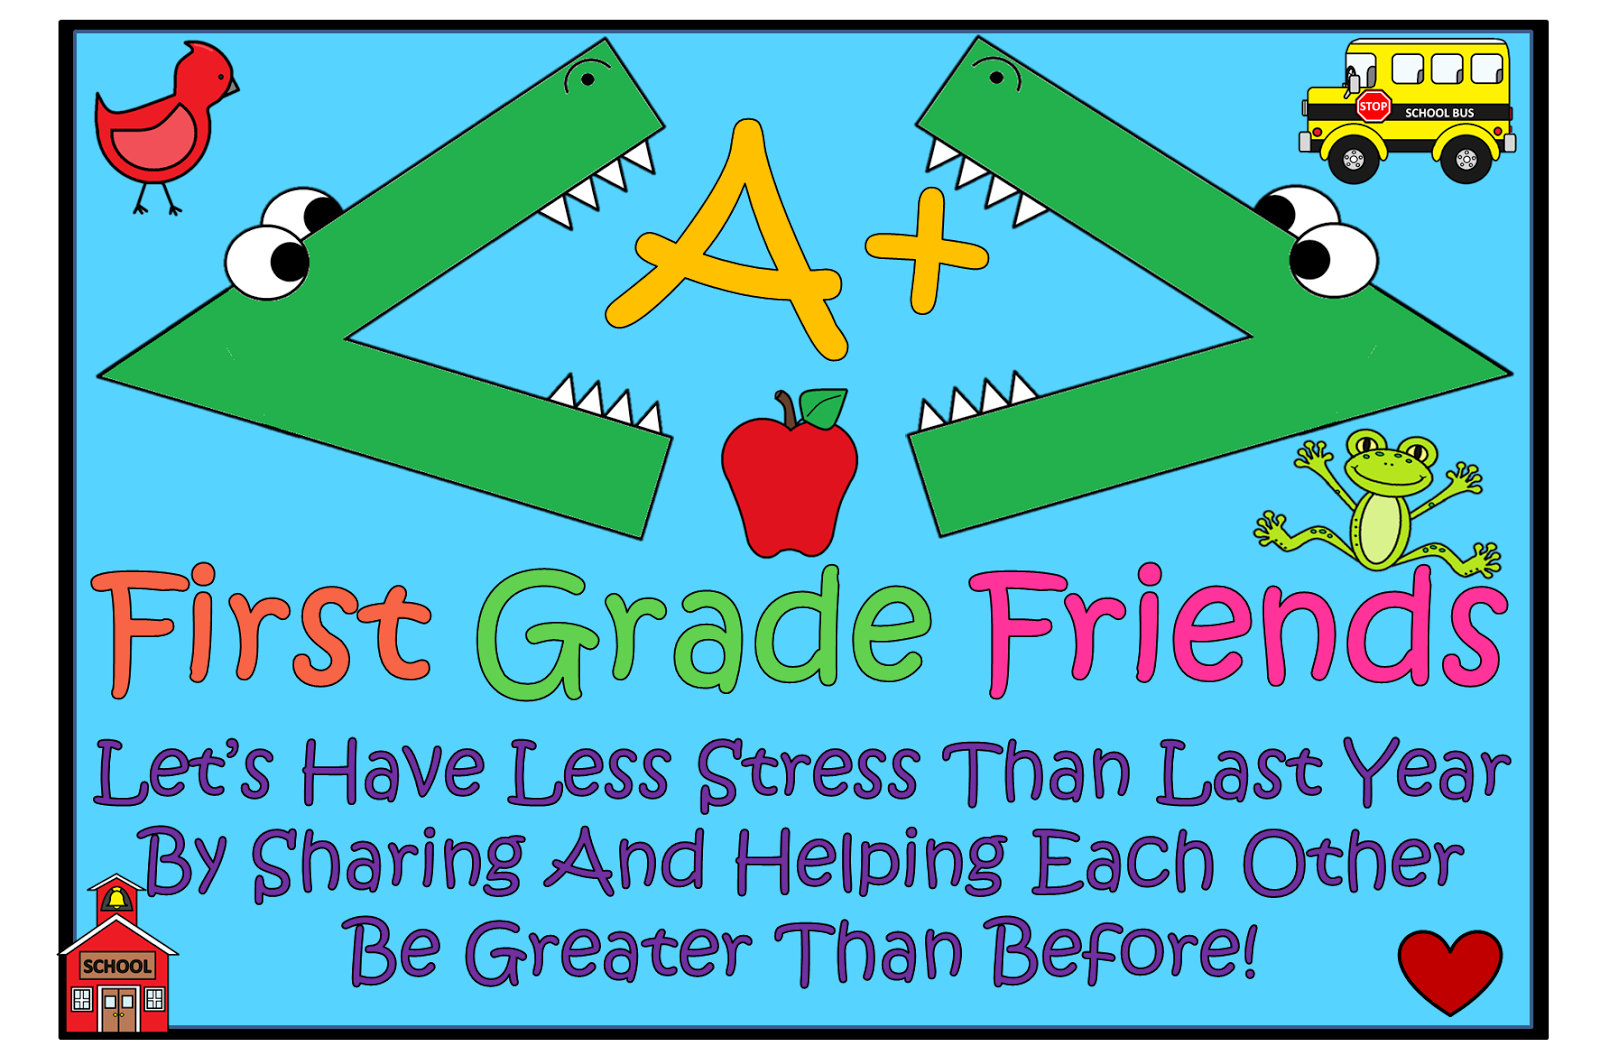 http://www.pinterest.com/reginadavis4/a%2B-first-grade-friends/